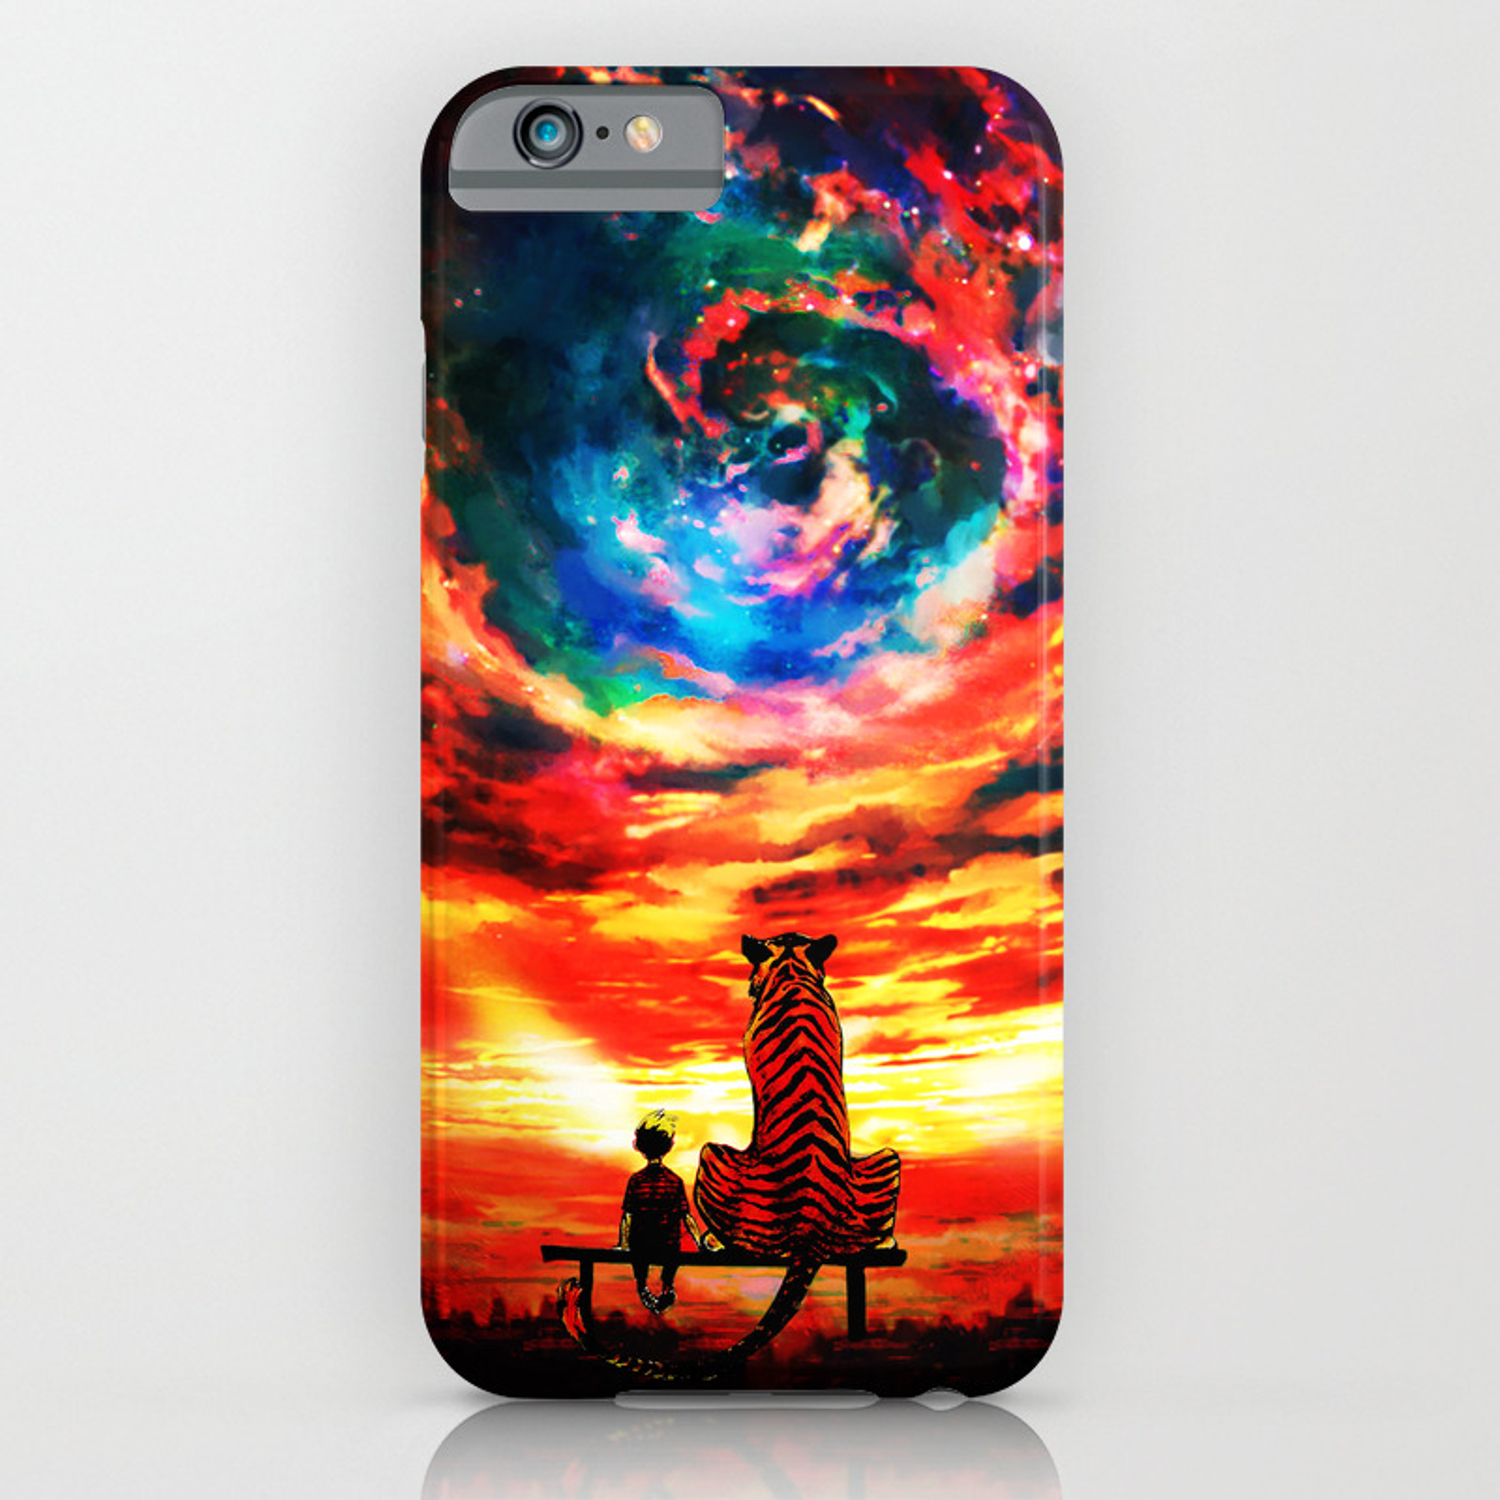 Calvin And Hobbes Staring Galaxy iphone case